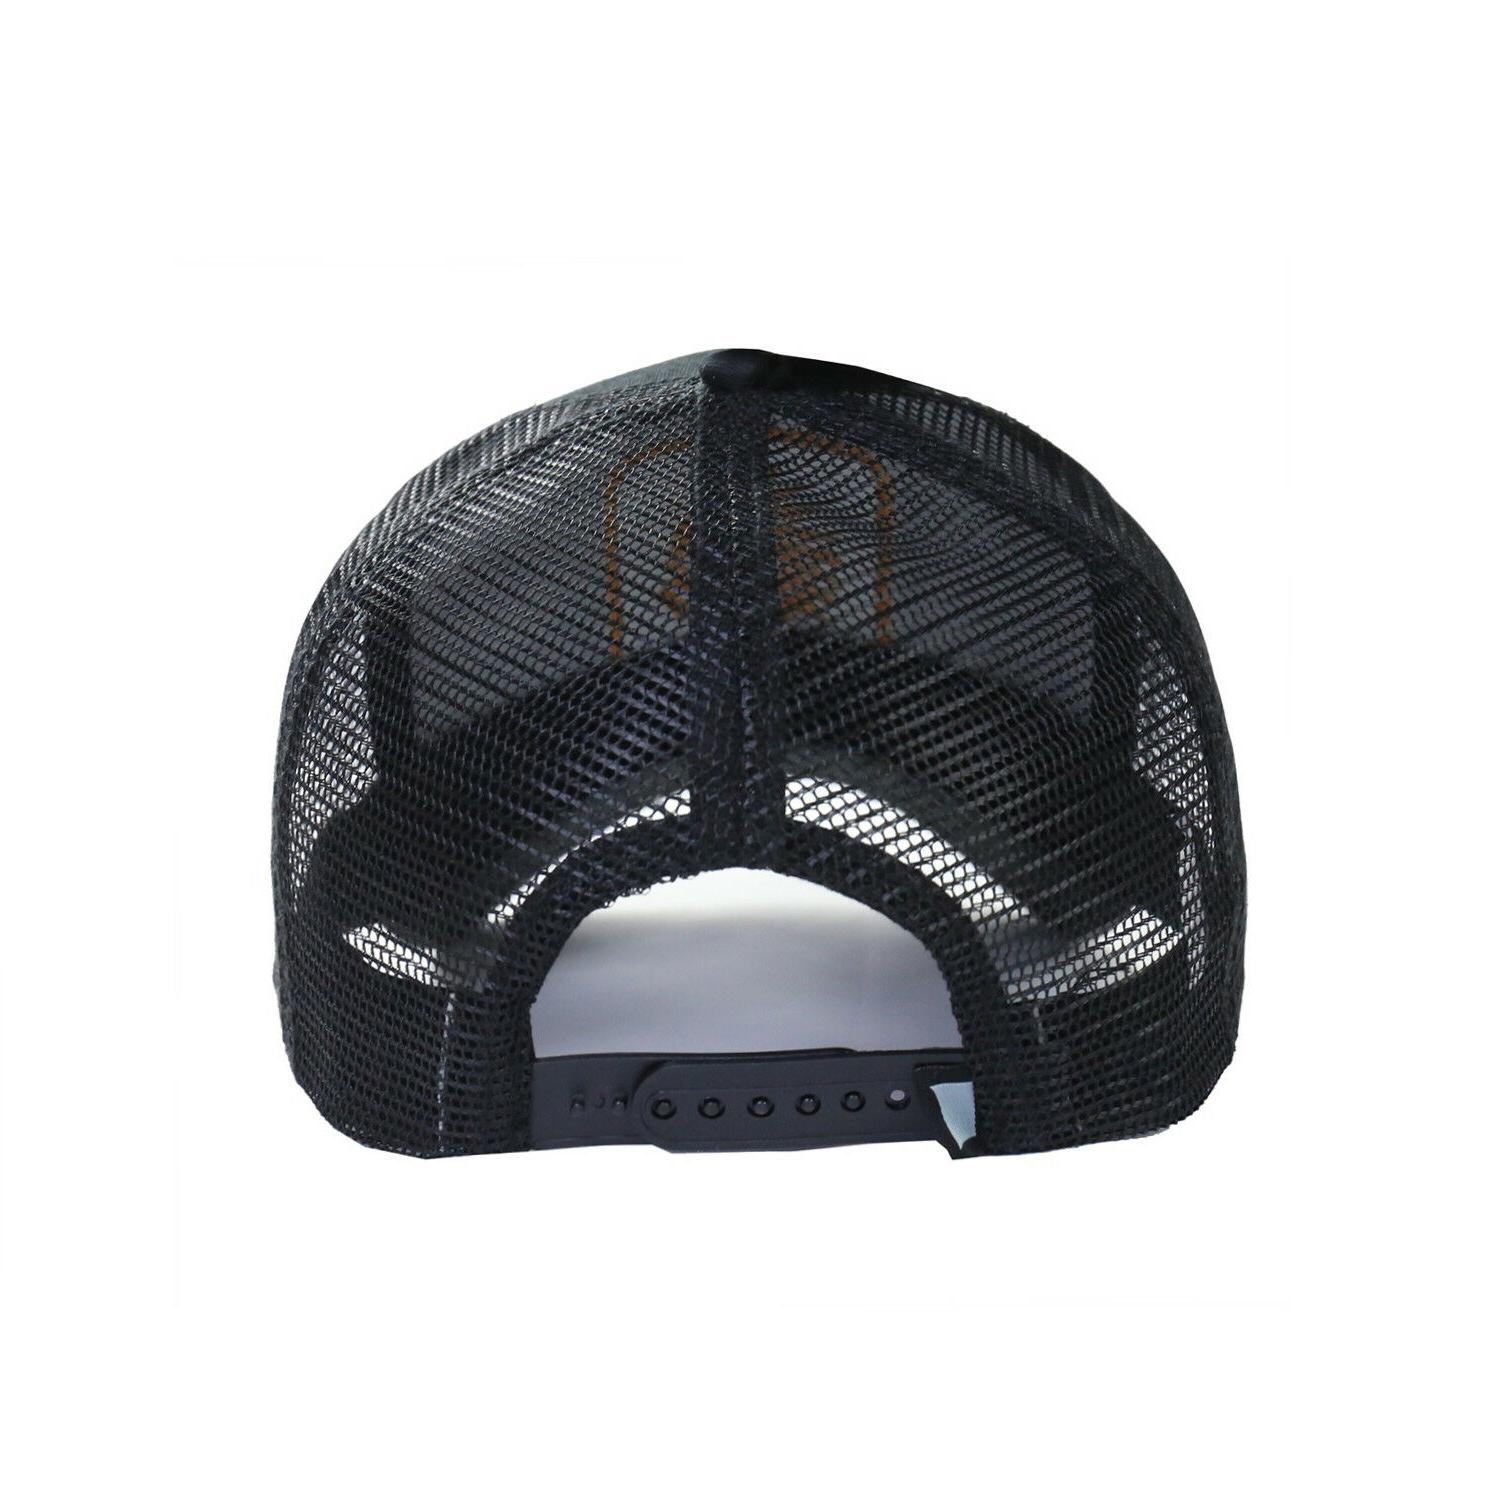 Men's Chief Adjustable Sports Baseball